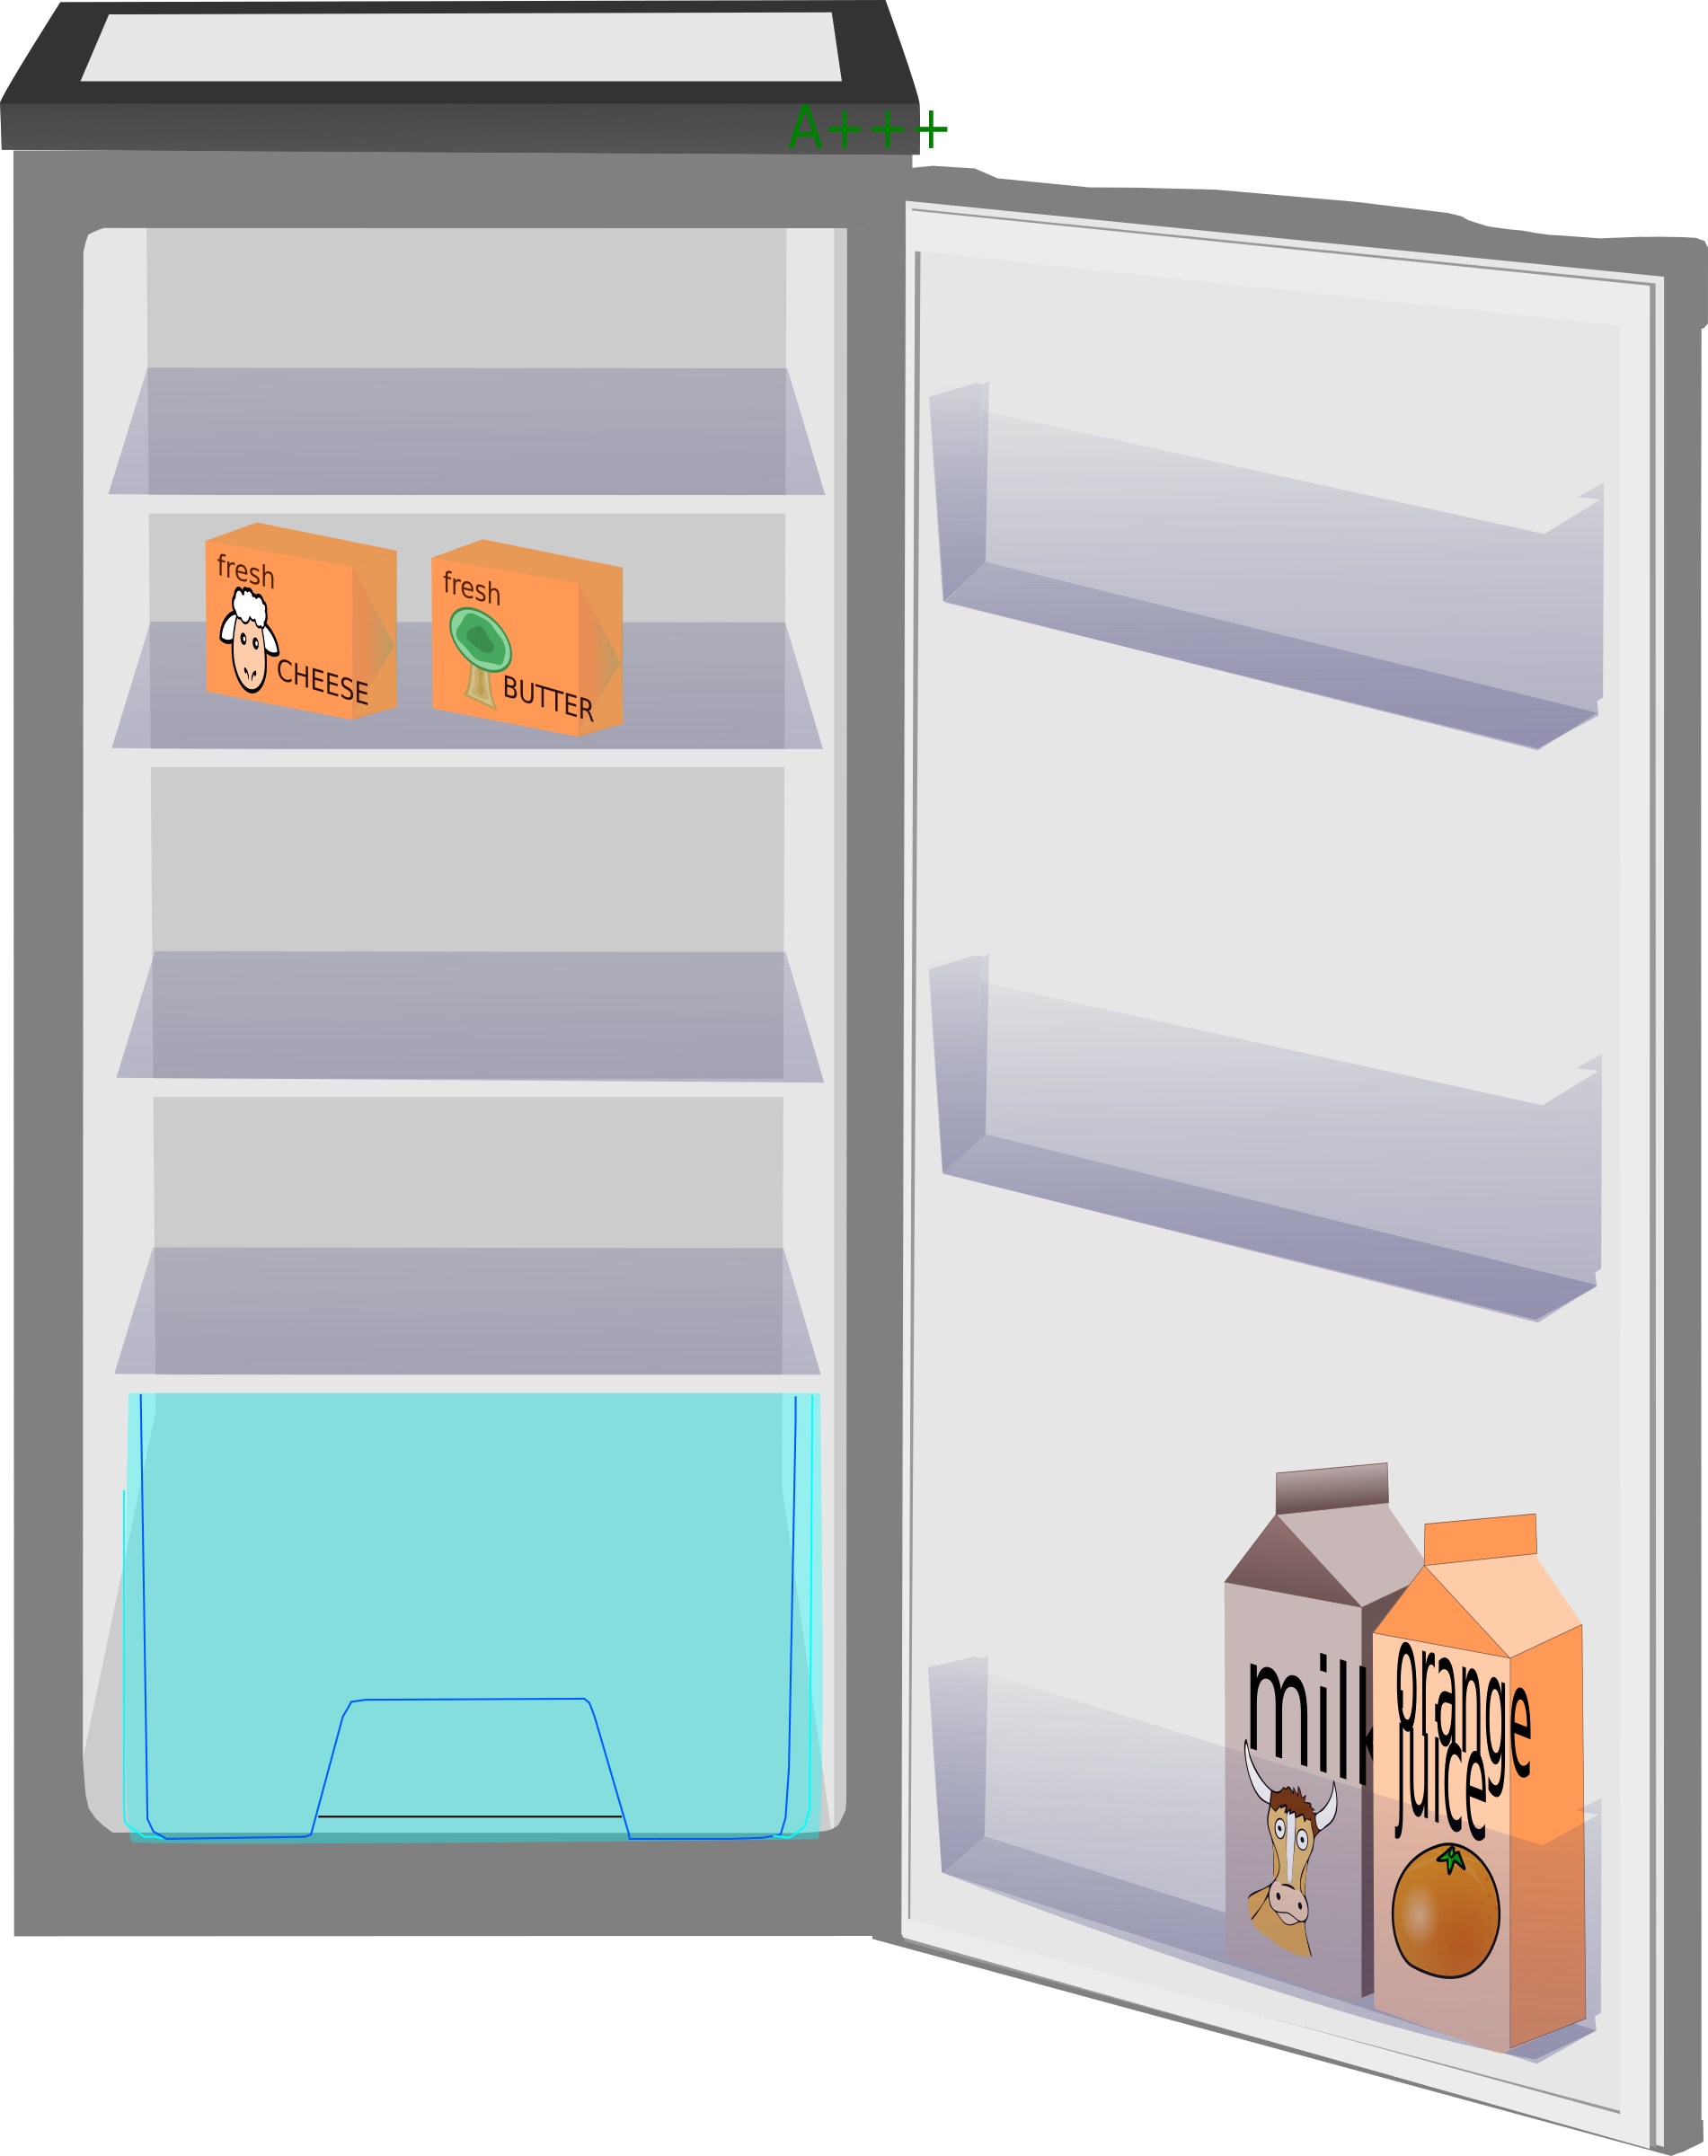 collection of refrigerator. Fridge clipart transparent background